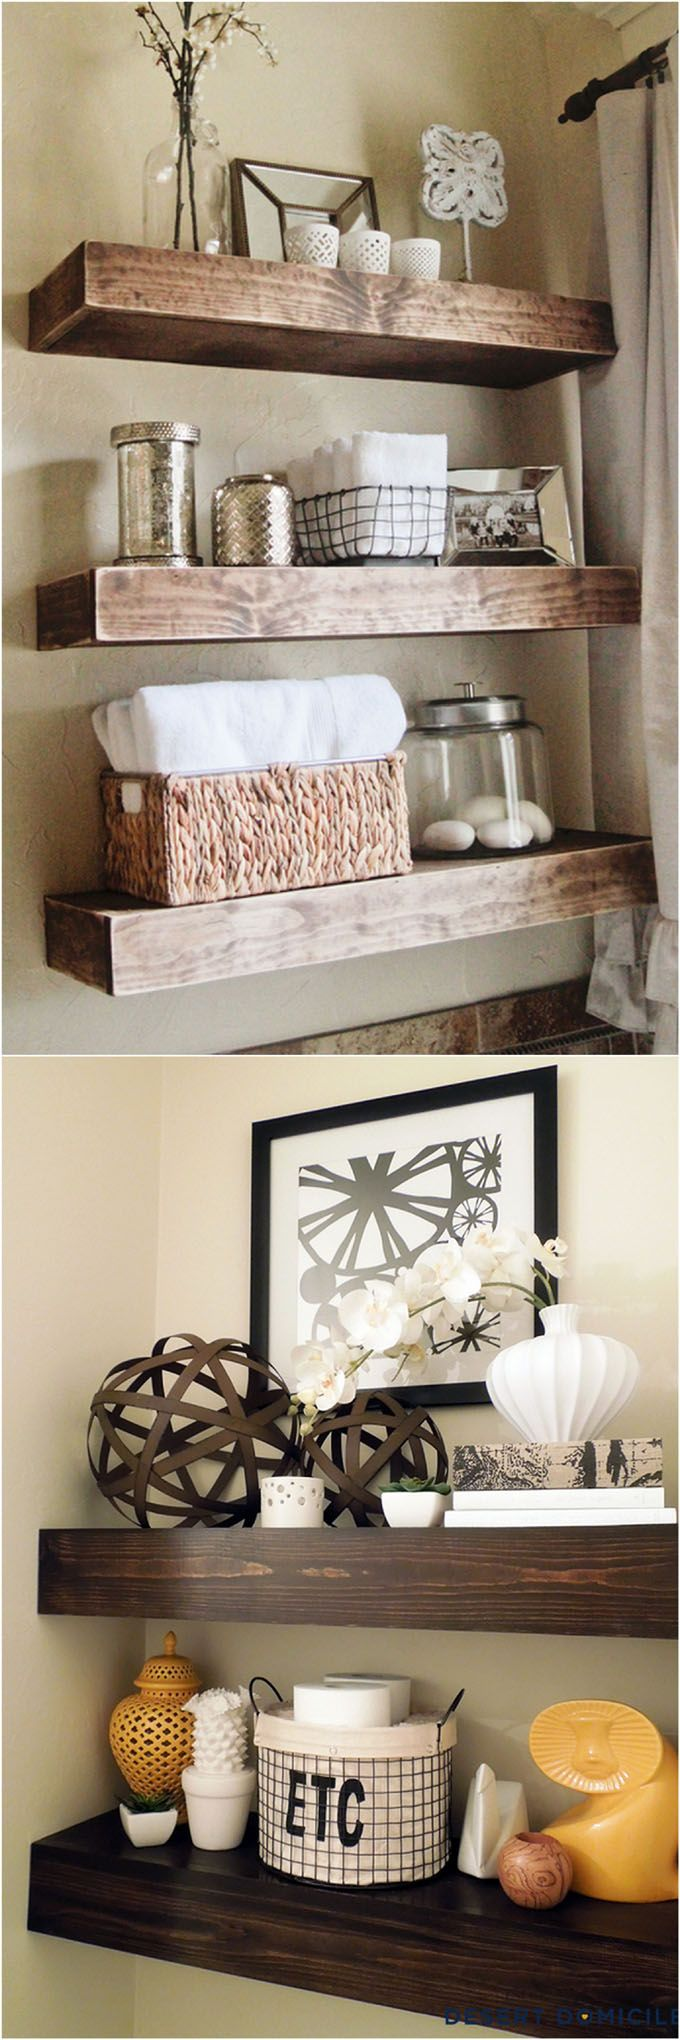 16 Easy and Stylish DIY Floating Shelves & Wall Shelves | Design ...